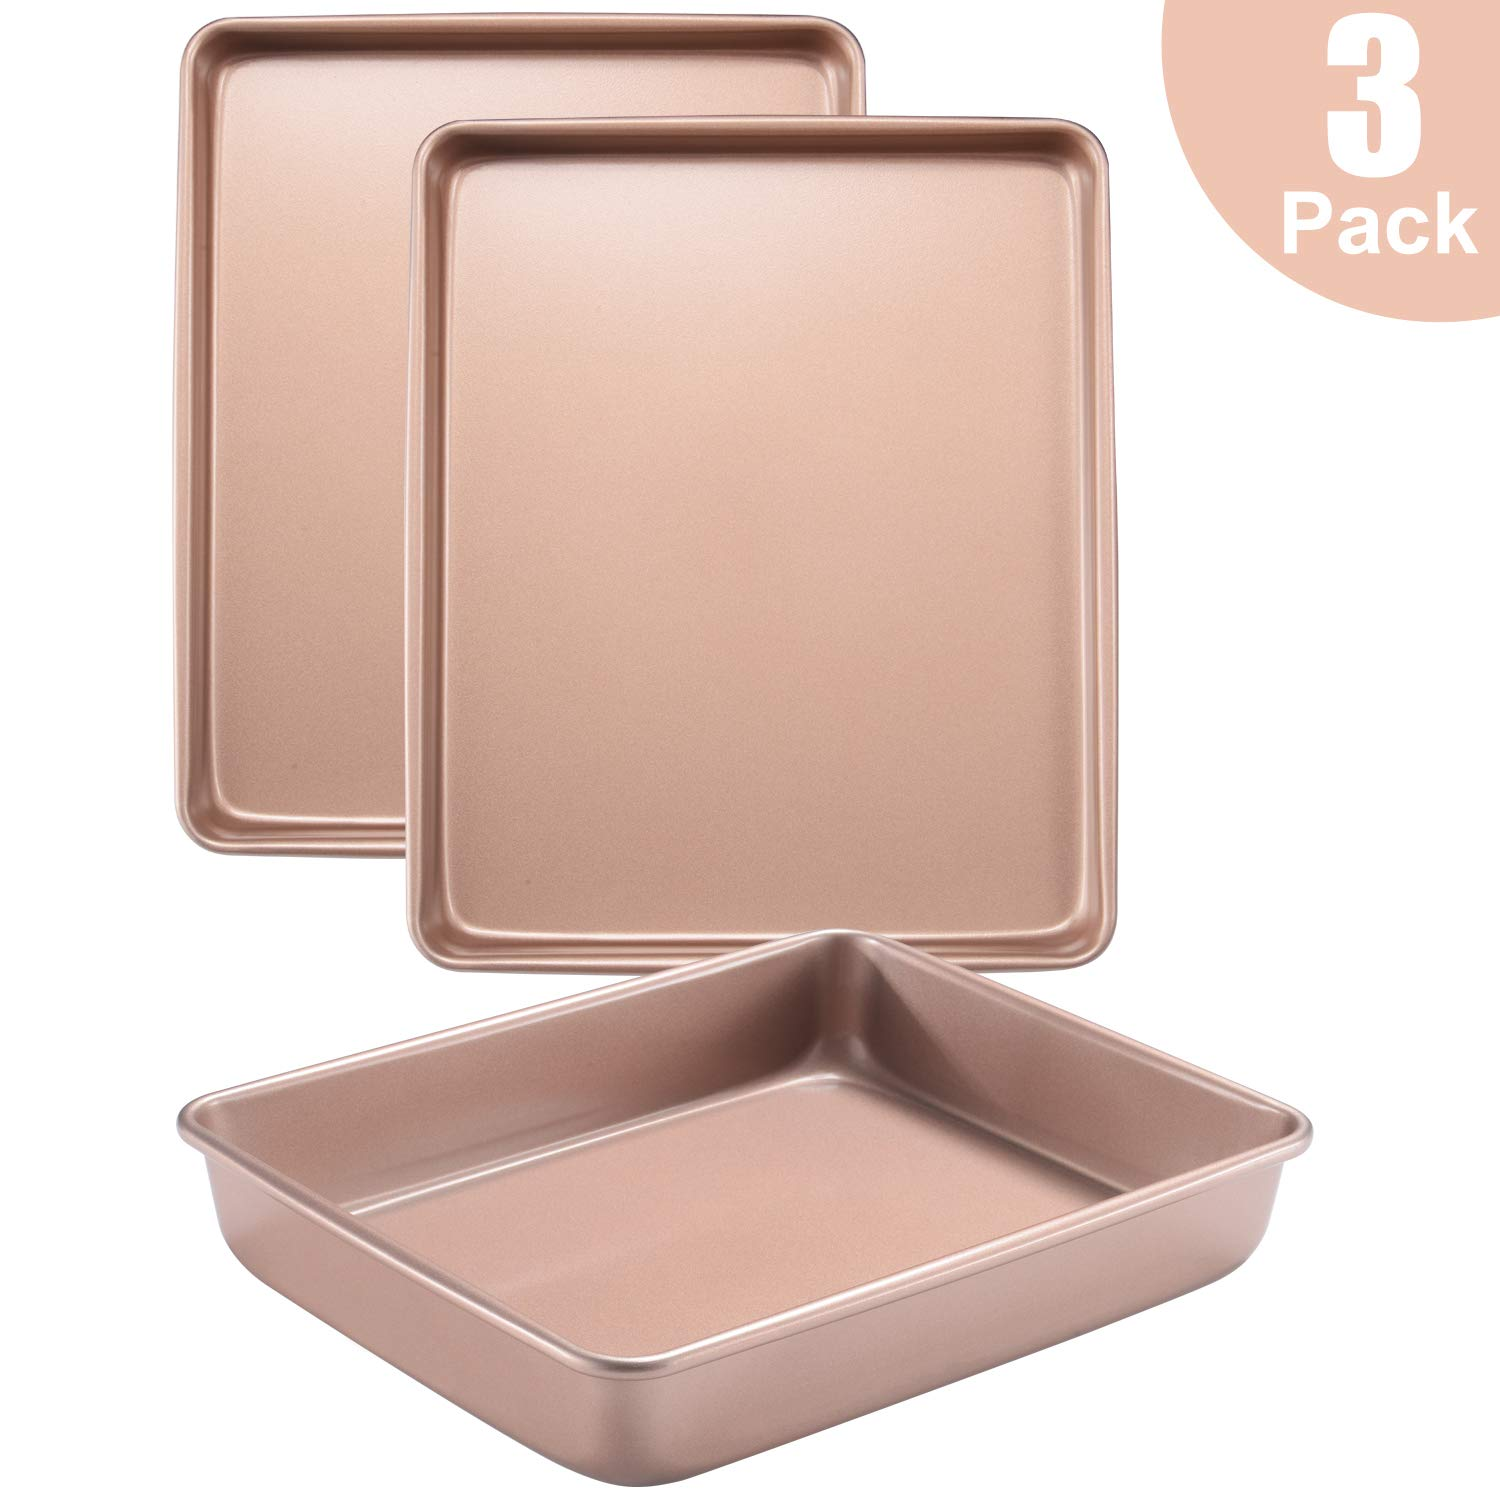 Joho Baking Sheet Pans Cookie Sheet,Bakeware Set of 3,Deep Baking Pans Nonstick Set,3-Piece Baking Trays for Oven,Gold